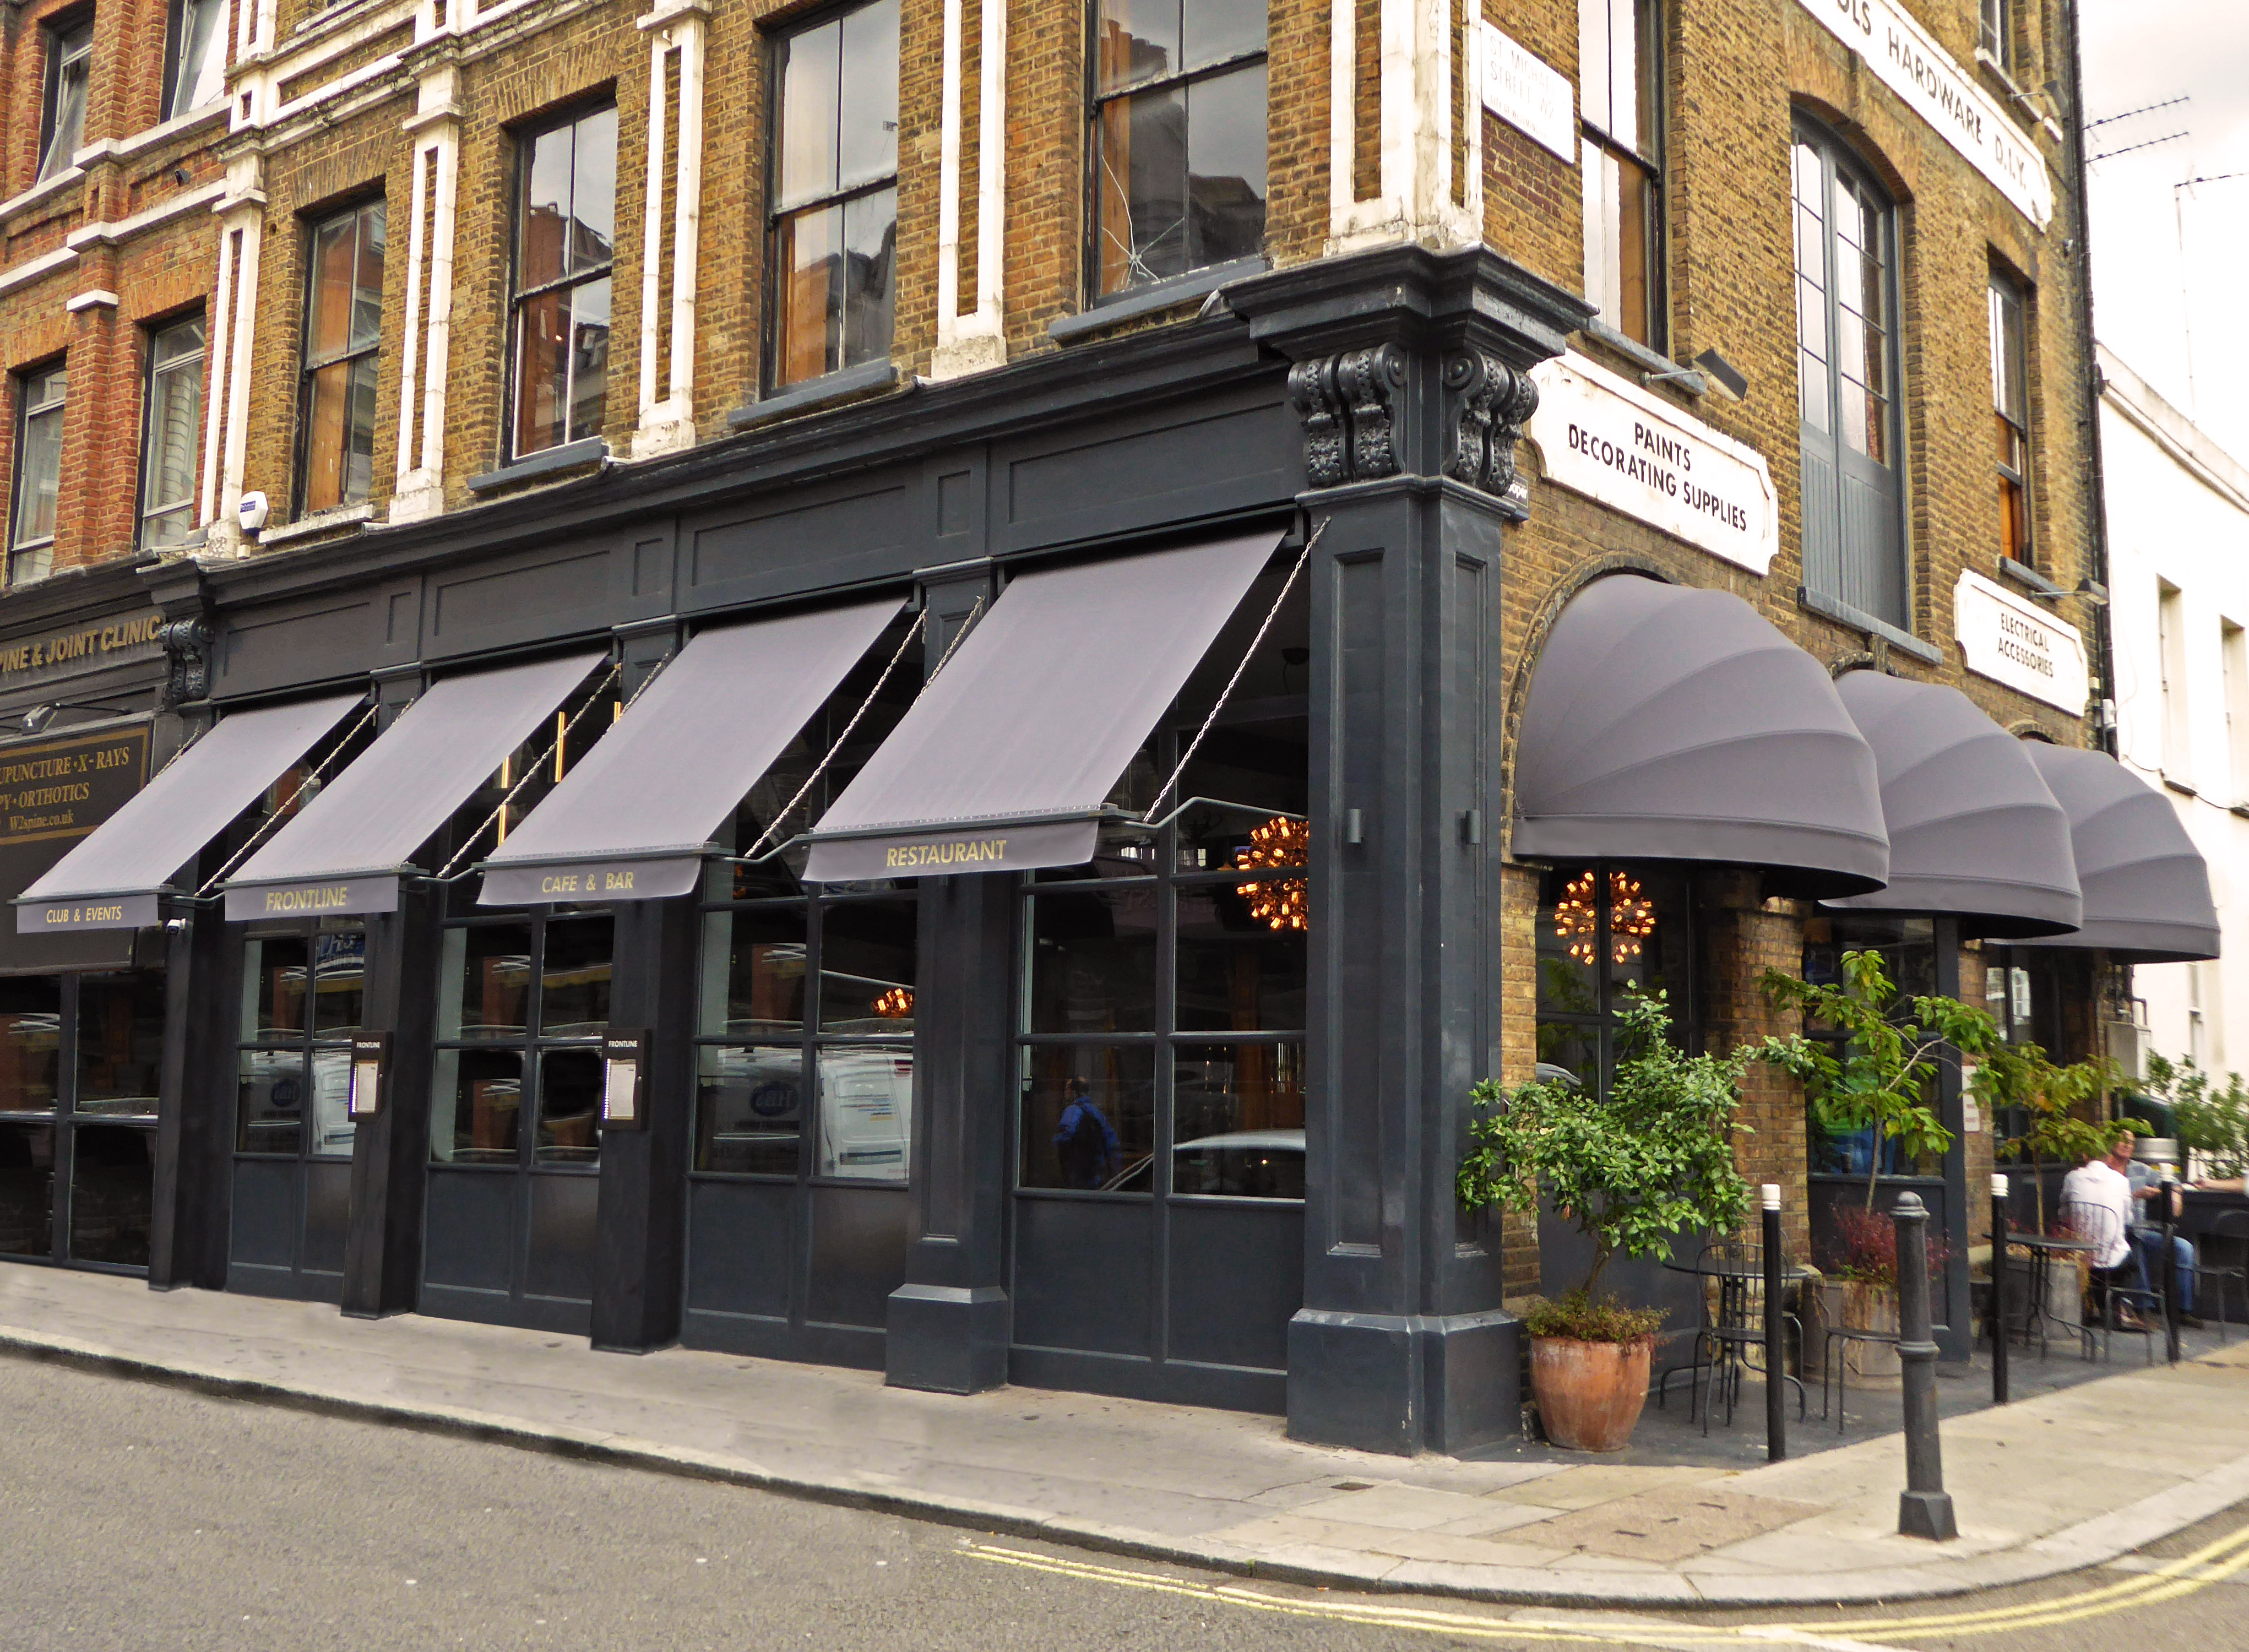 Frontline awnings and canopies